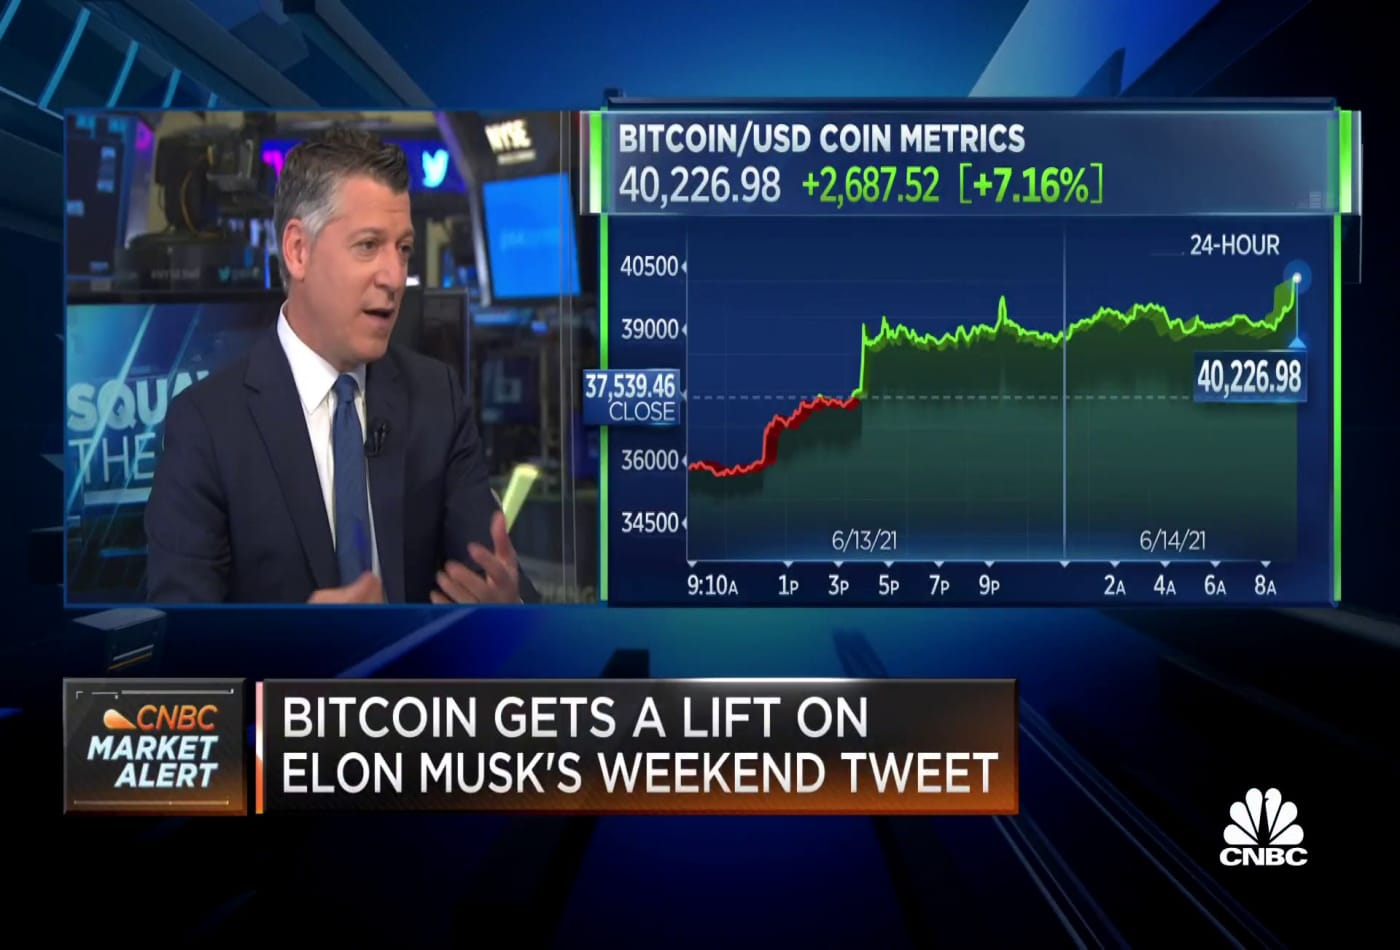 Jim Cramer on bitcoin moving on comments from Elon Musk and Paul Tudor Jones